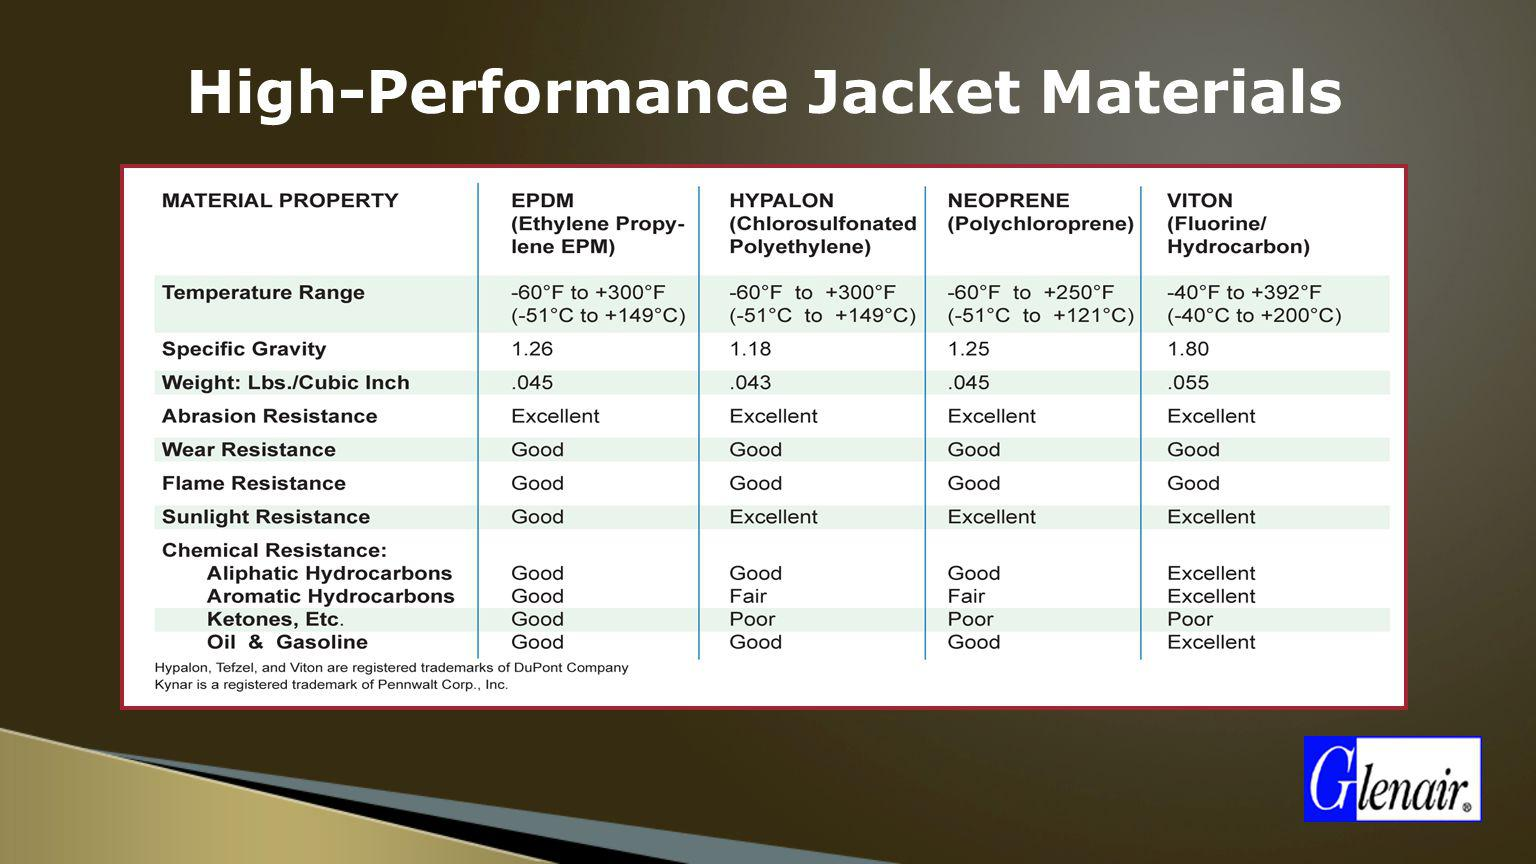 High-Performance Jacket Materials